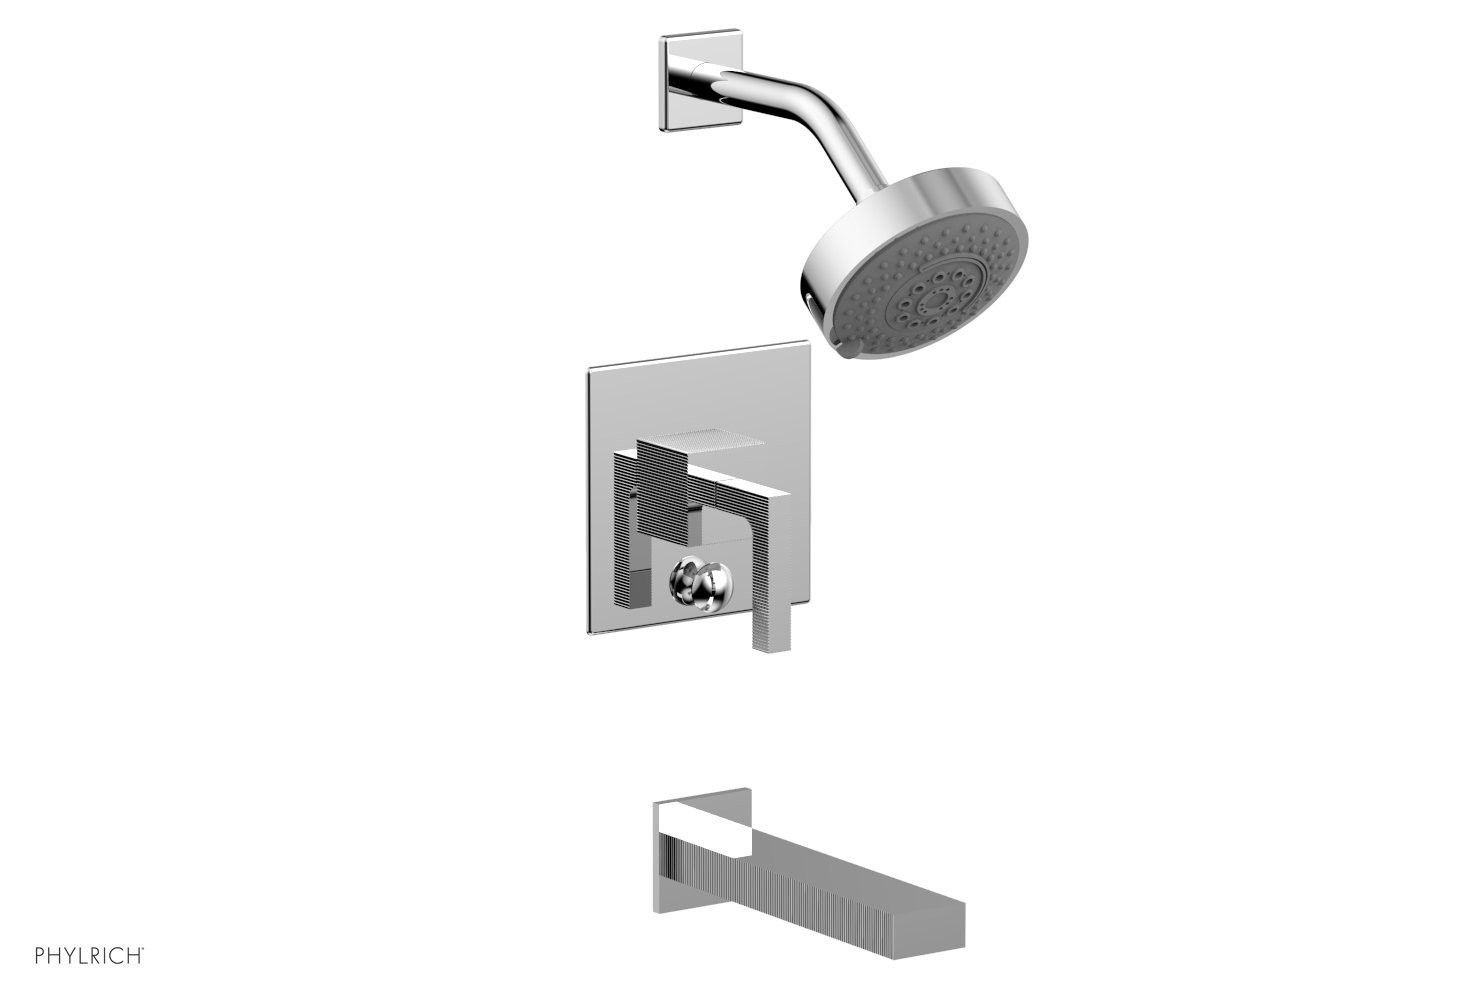 PHYLRICH 291-27 STRIA WALL MOUNT PRESSURE BALANCE TUB AND SHOWER SET WITH LEVER HANDLE